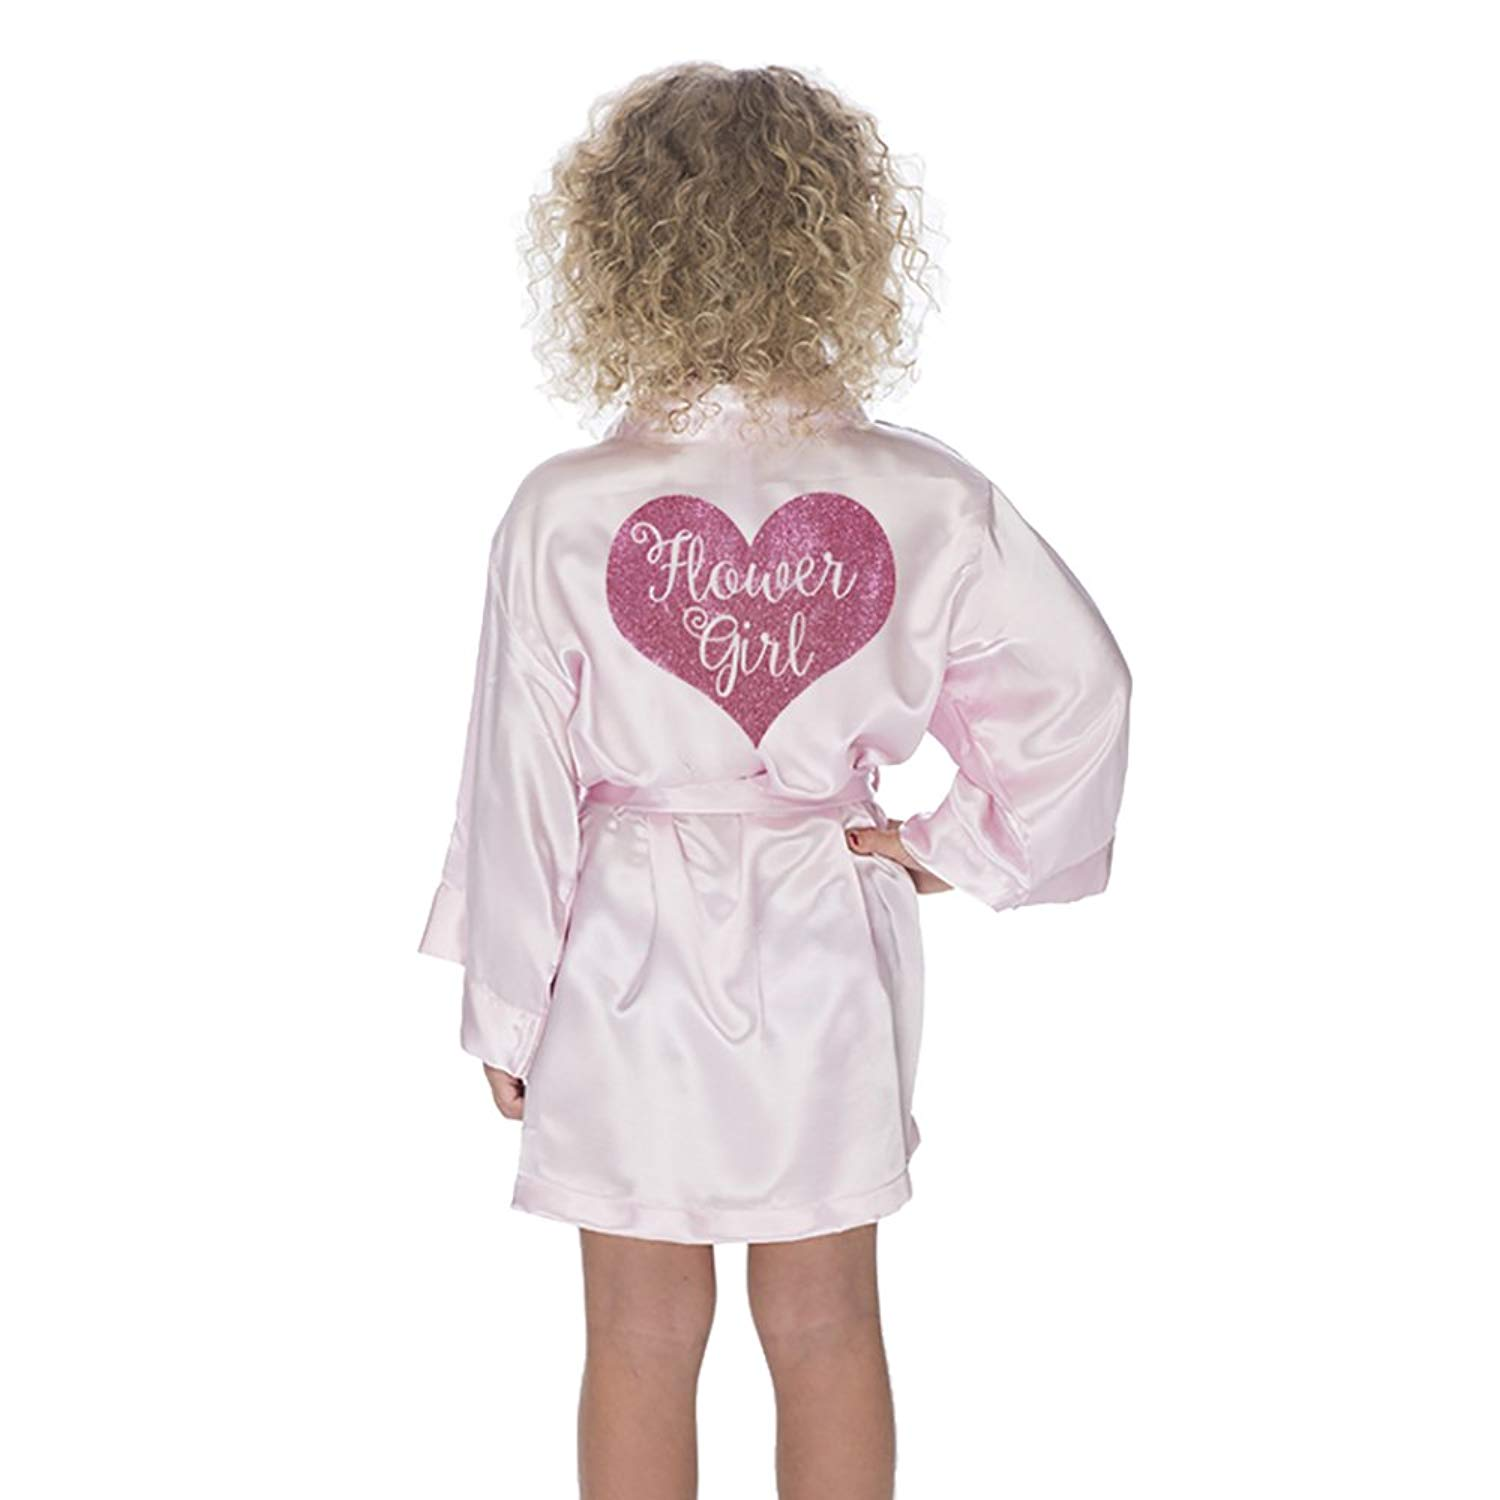 Classy Bride Flower Girl Robe Satin With Glitter deb99ebf4